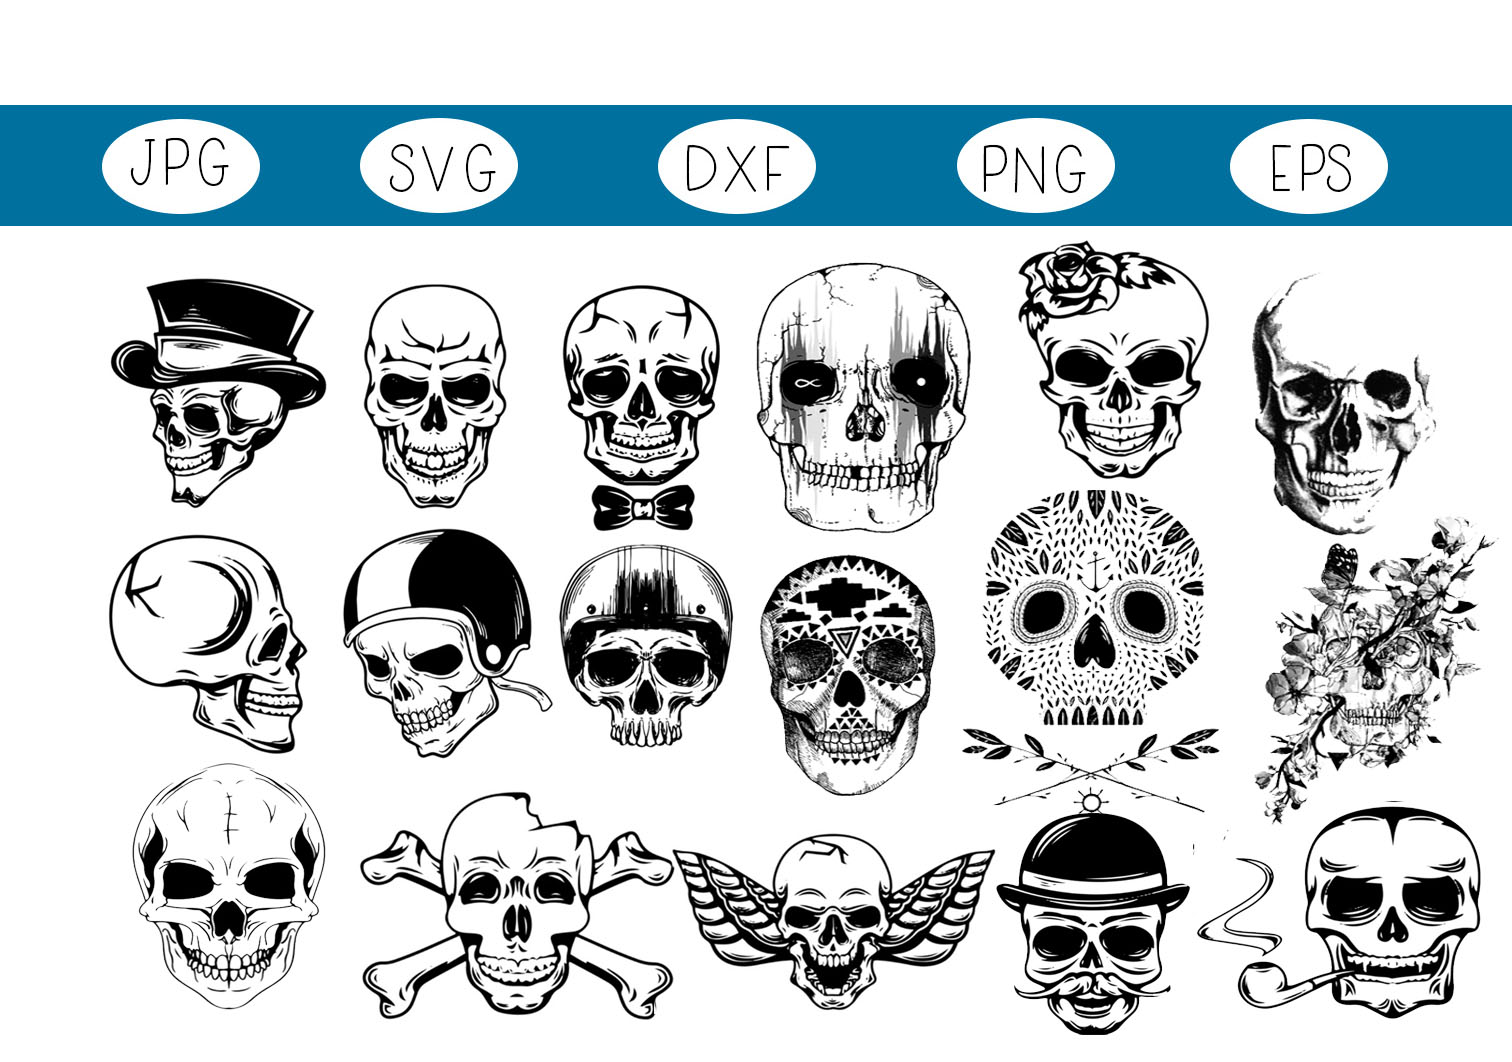 Download Free 17 Cool Skulls Graphic By Capeairforce Creative Fabrica for Cricut Explore, Silhouette and other cutting machines.